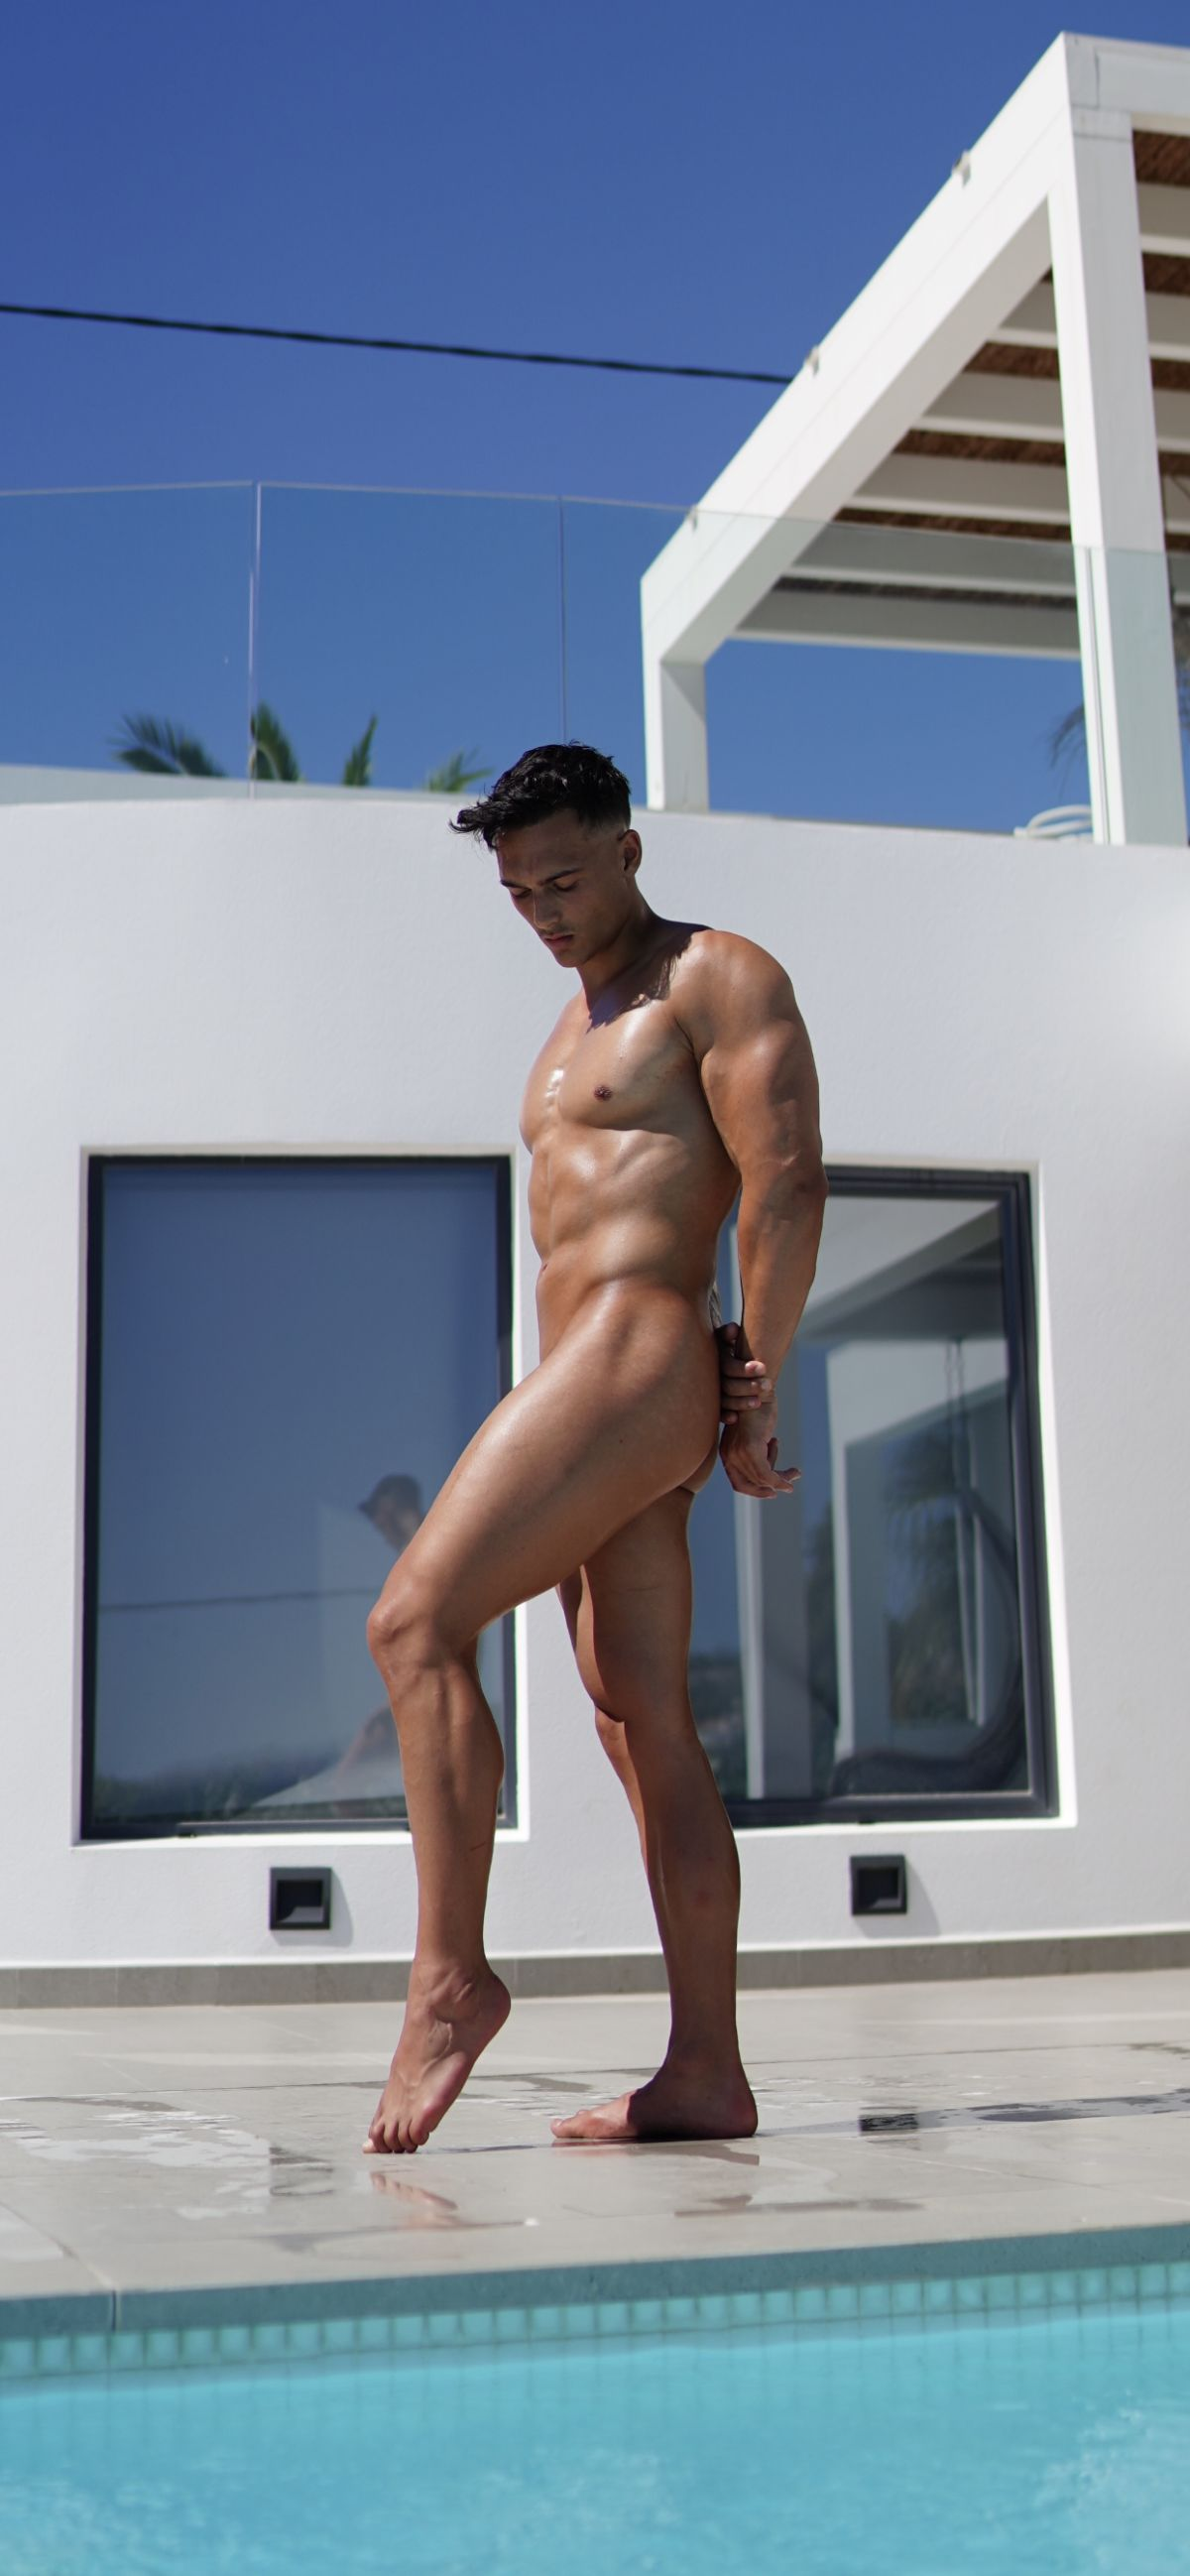 Free Levyx onlyfans onlyfans leaked